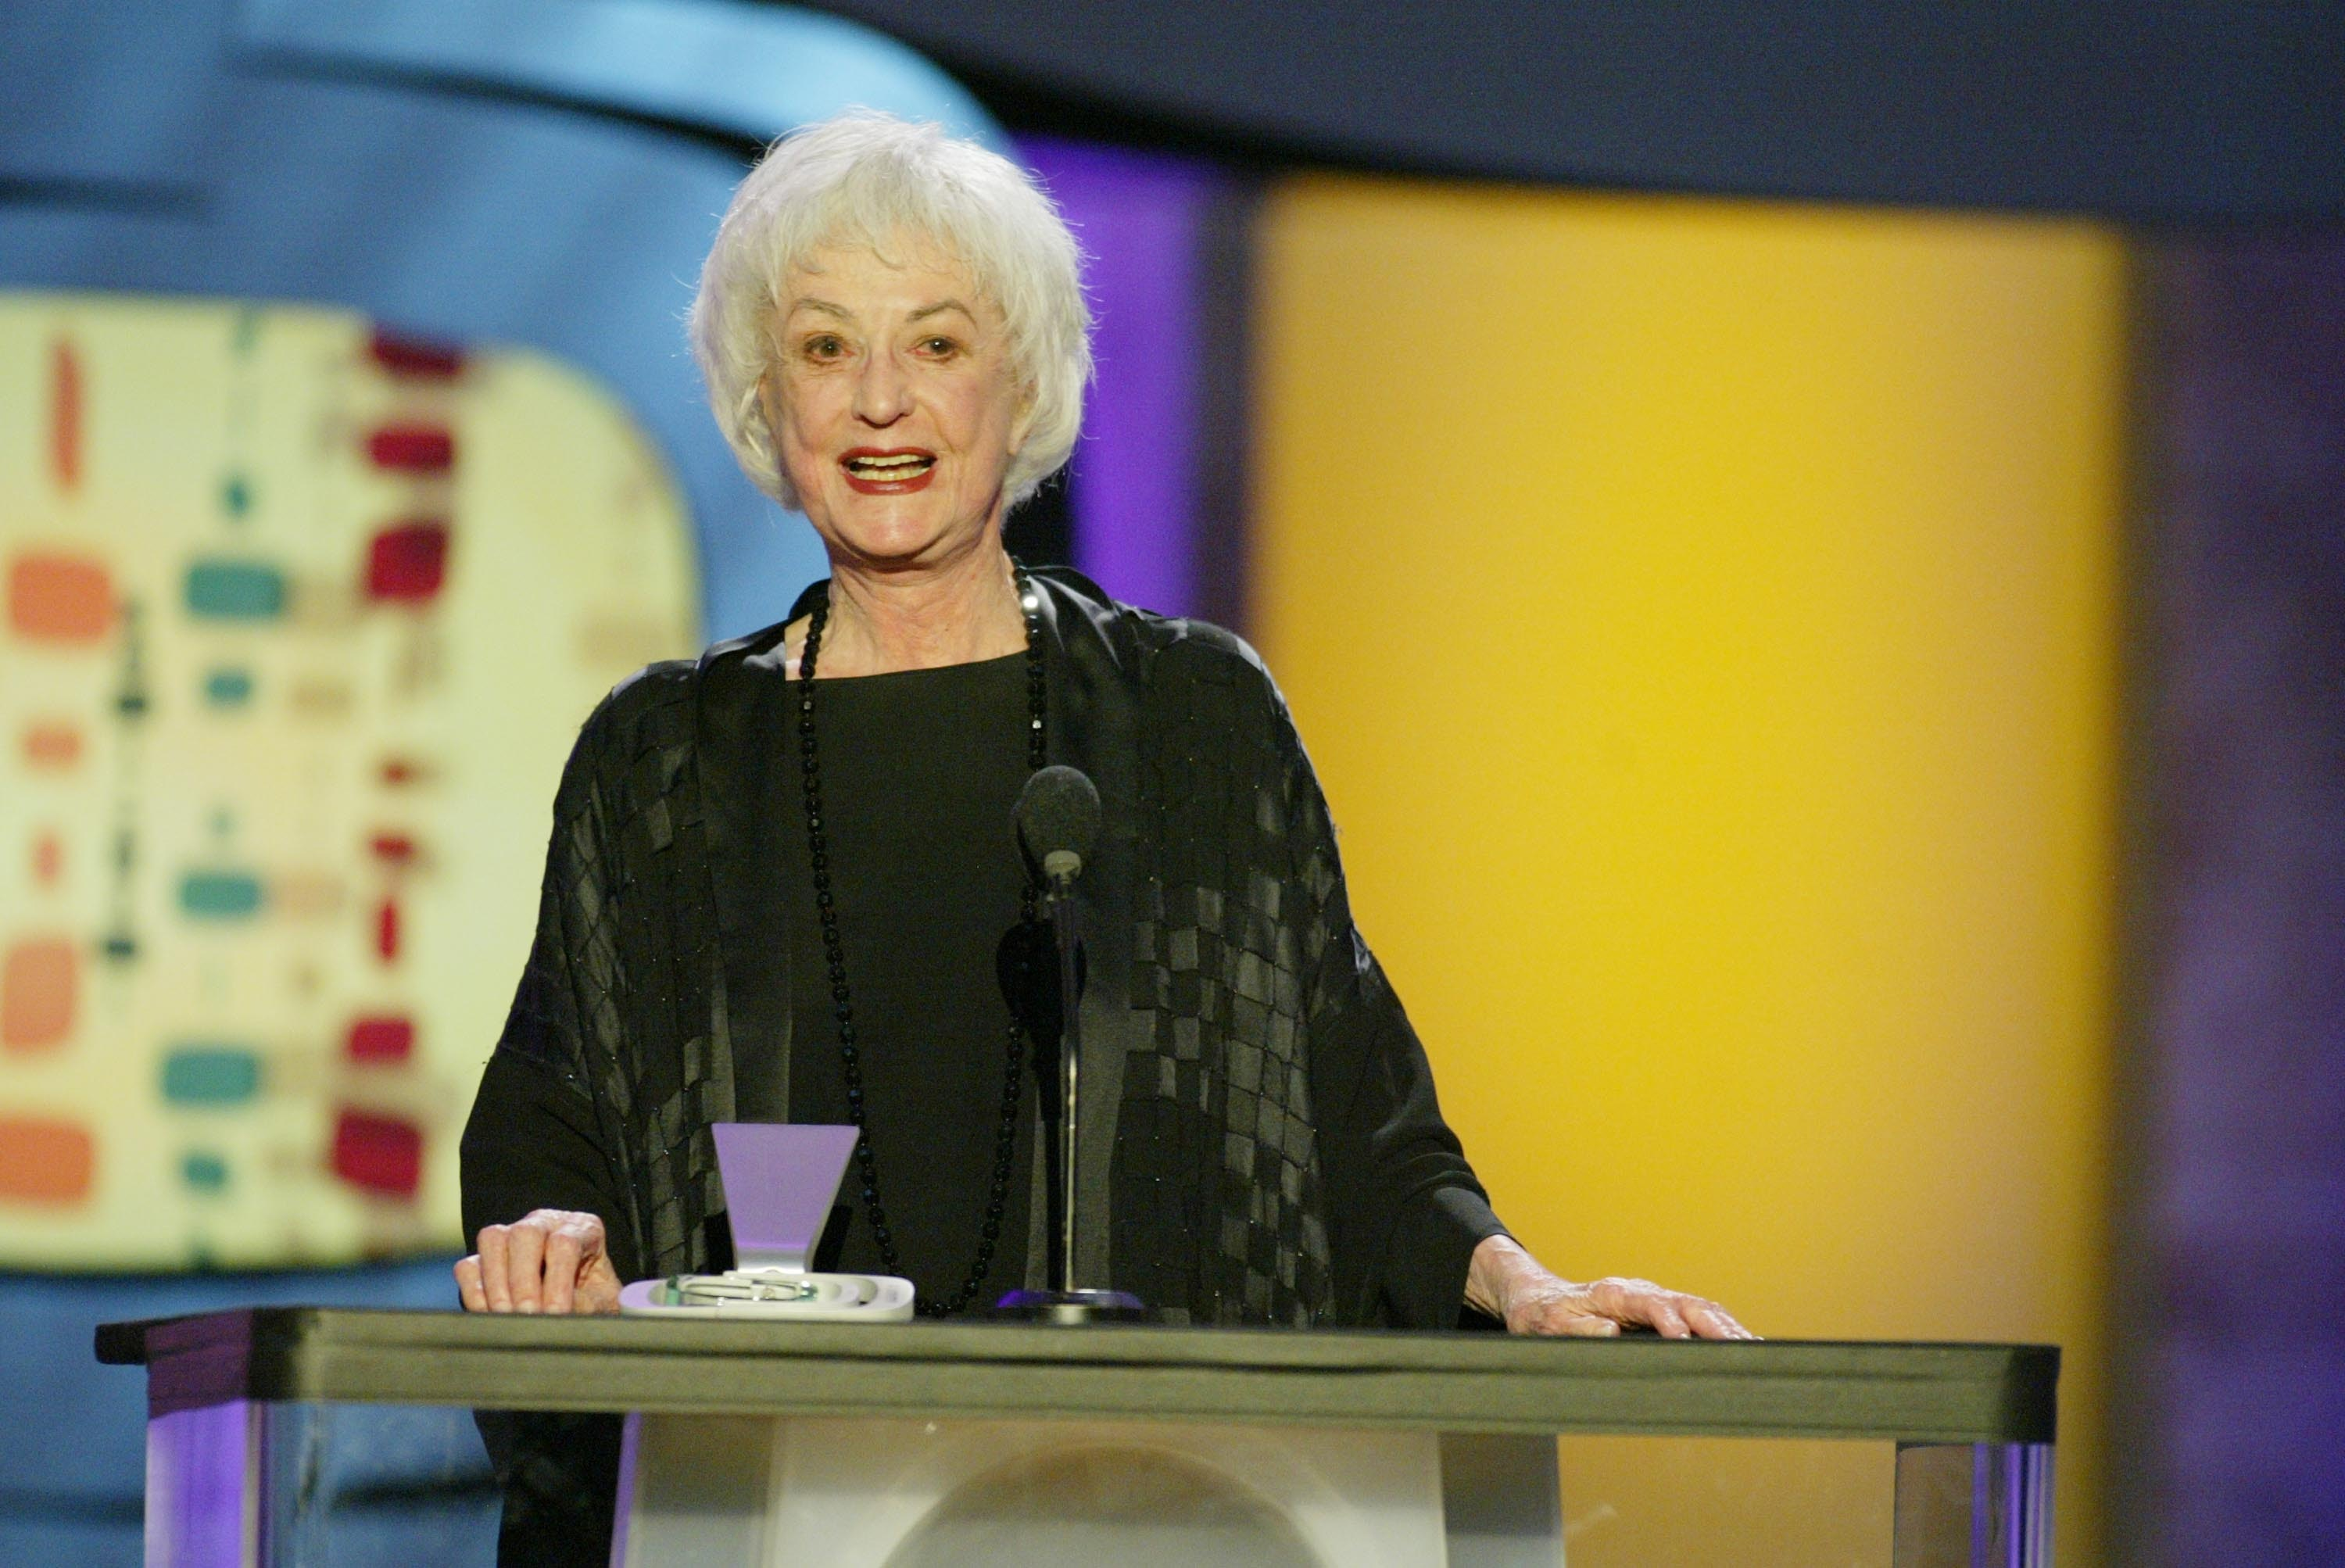 Bea Arthur's shelter for homeless LGBTI youth to open early 2017